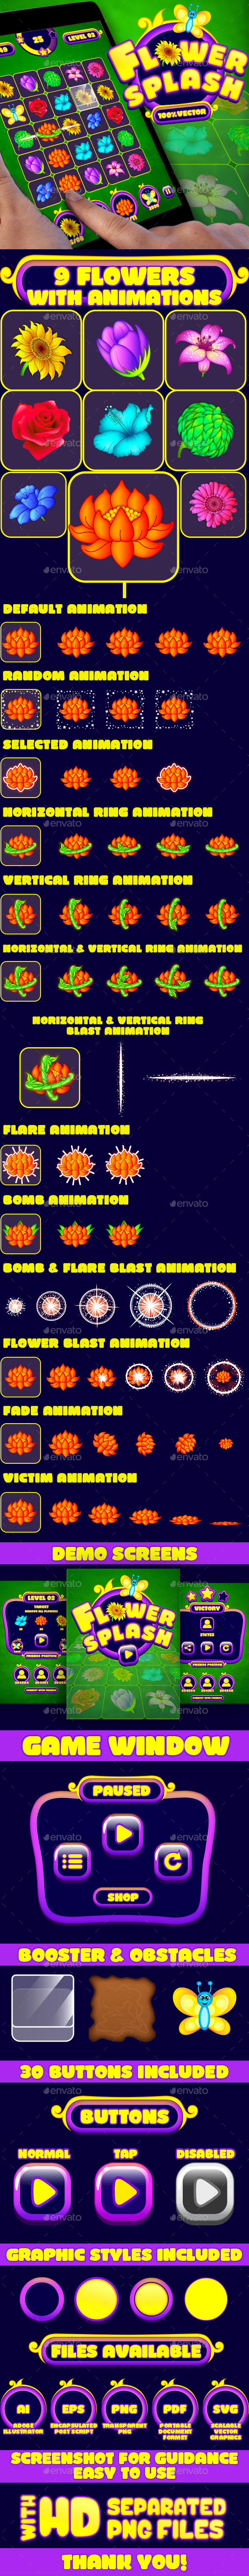 Flower Splash: Match-3 Puzzle Game UI Pack - Game Kits Game Assets